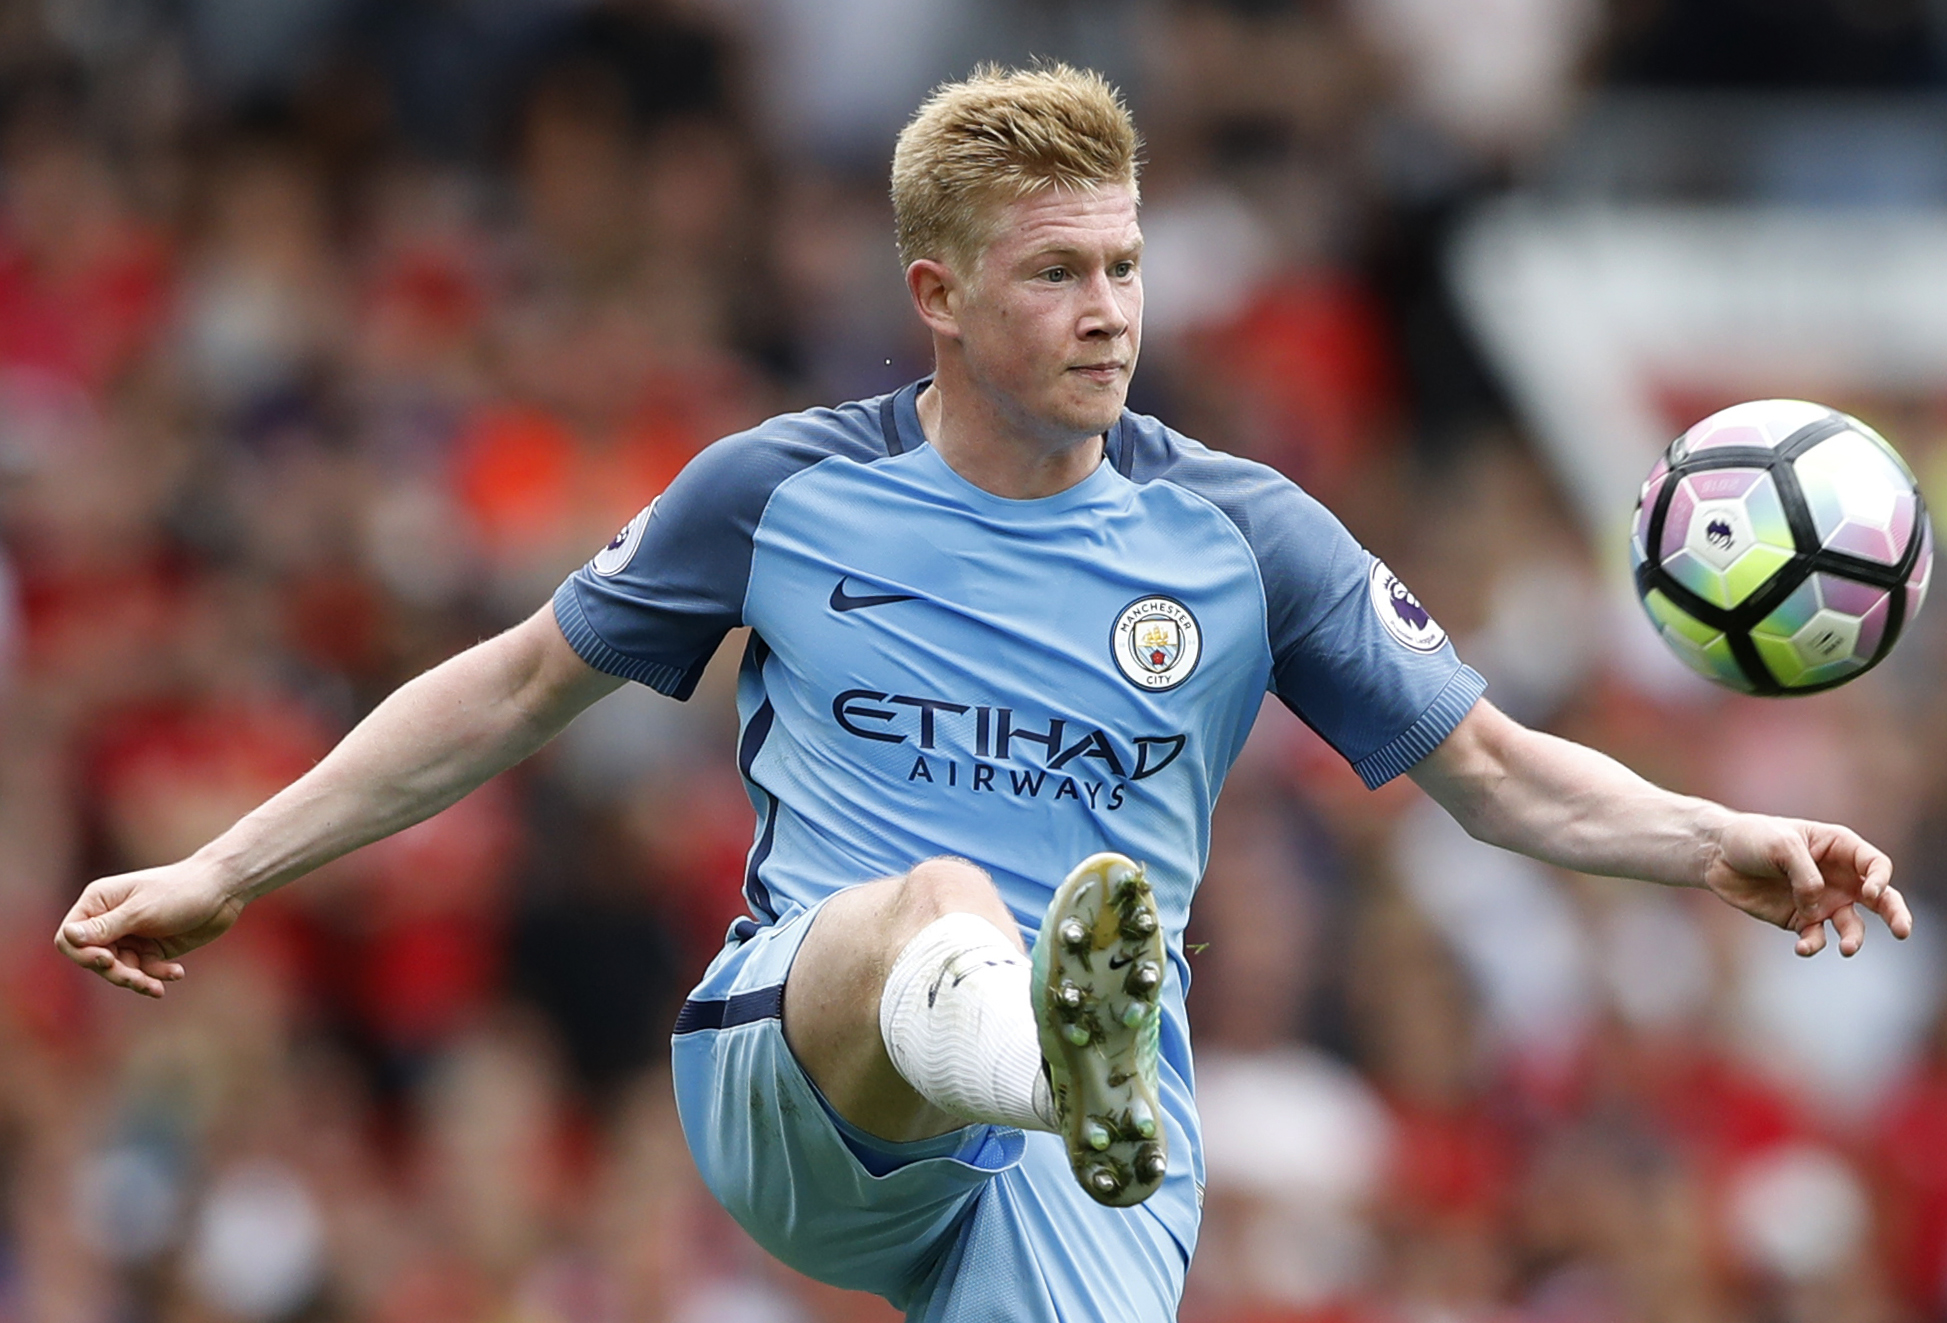 Kevin De Bruyne of Manchester City pluck the ball out of the air during his dazzling performance in the Manchester derby. At 25, De Bruyne is widely considered one of the most promising talents in Europe. But it could have been so different had he not taking the plunge and left Chelsea when he did. Image supplied by Action Images / Carl Recine.